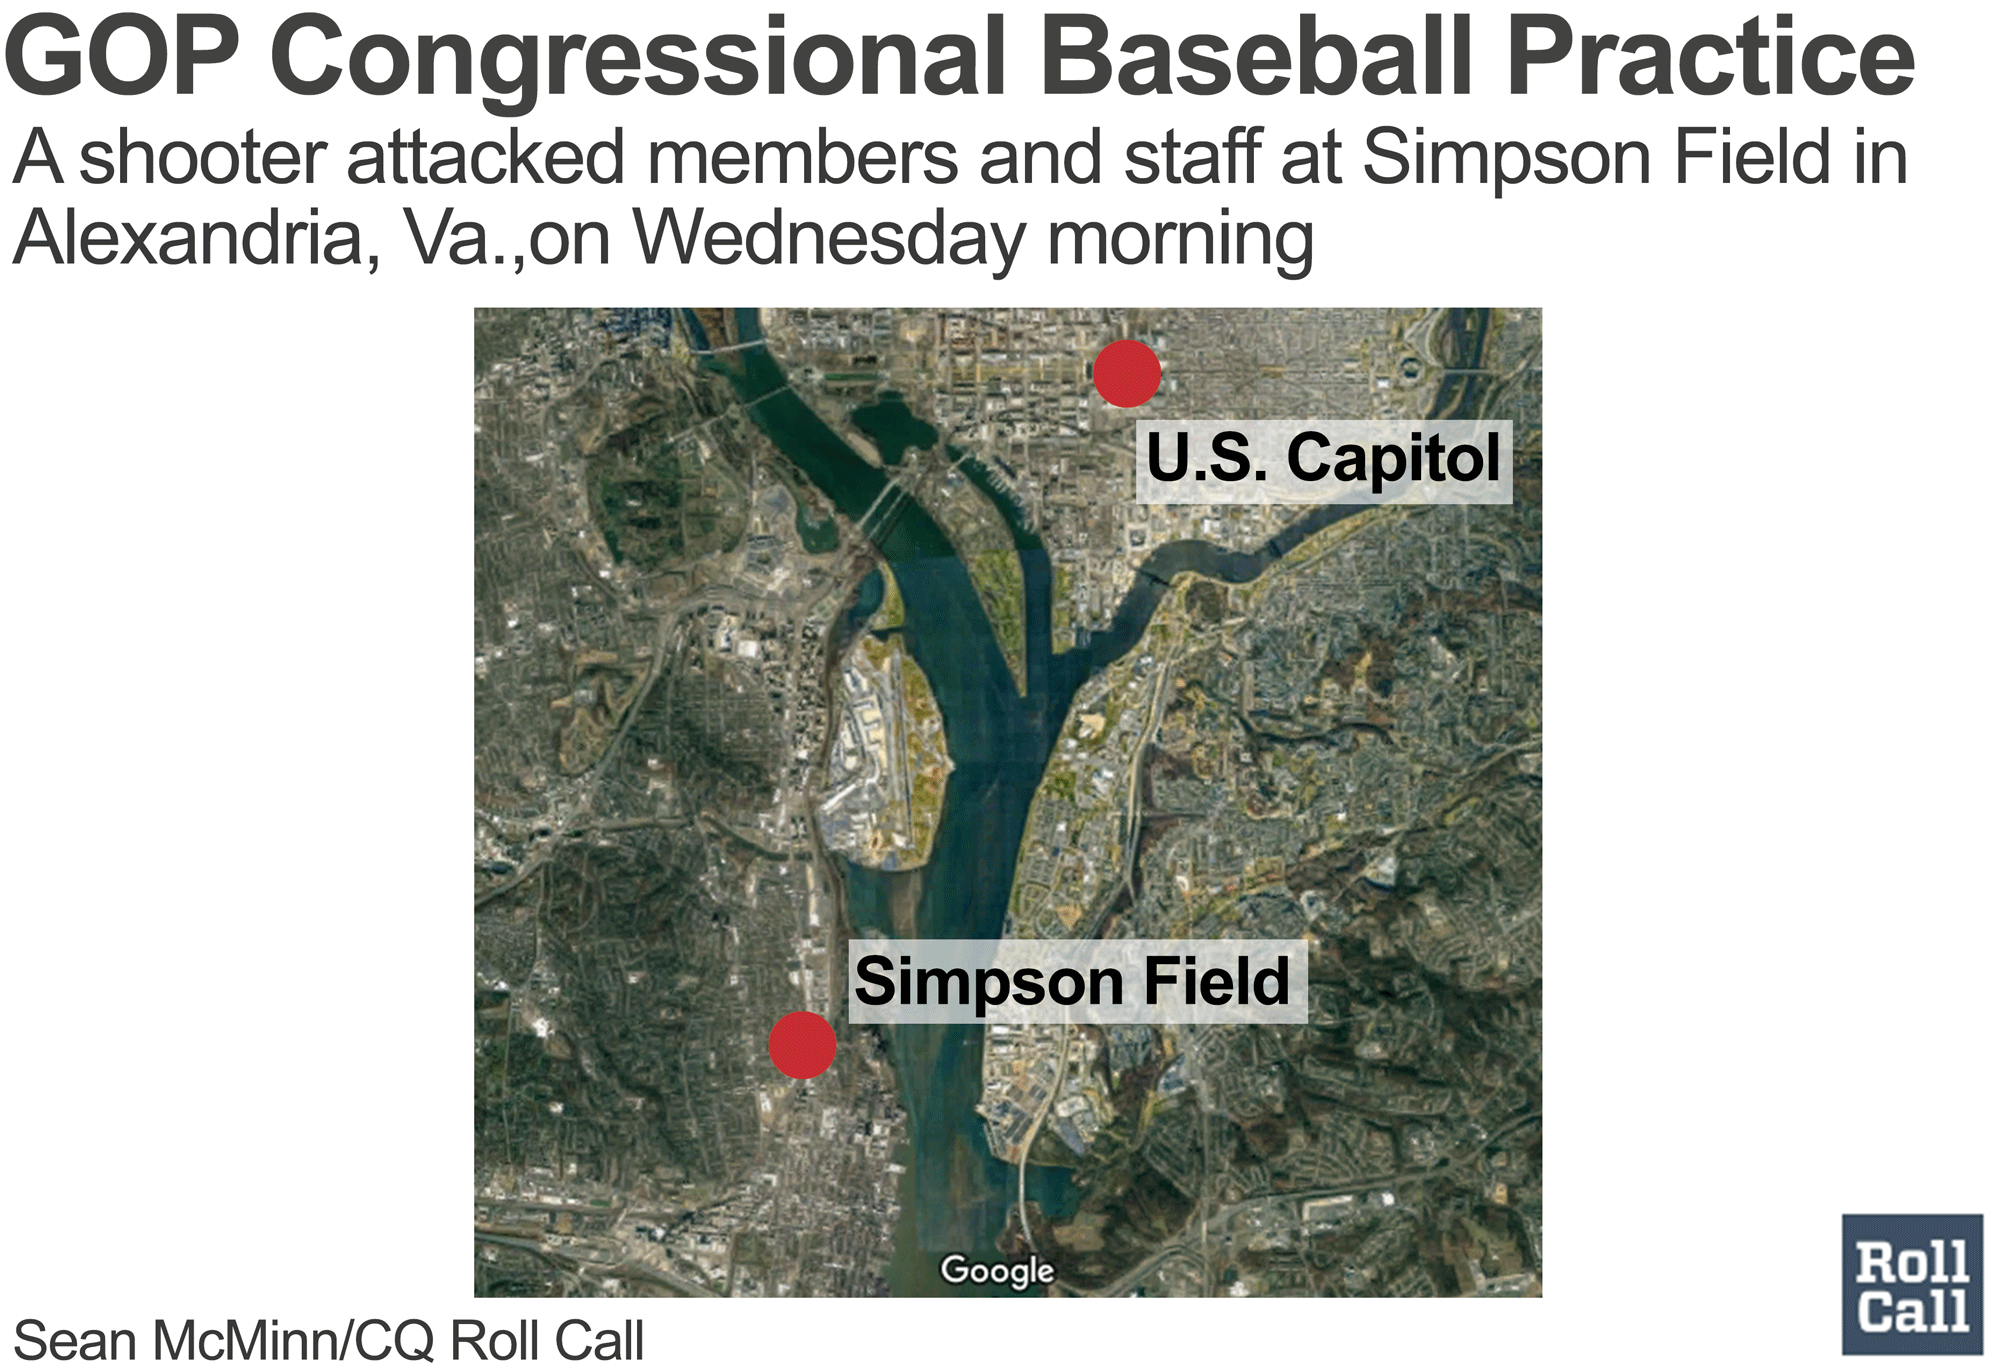 House Majority Whip Steve Scalise critical, hospital says